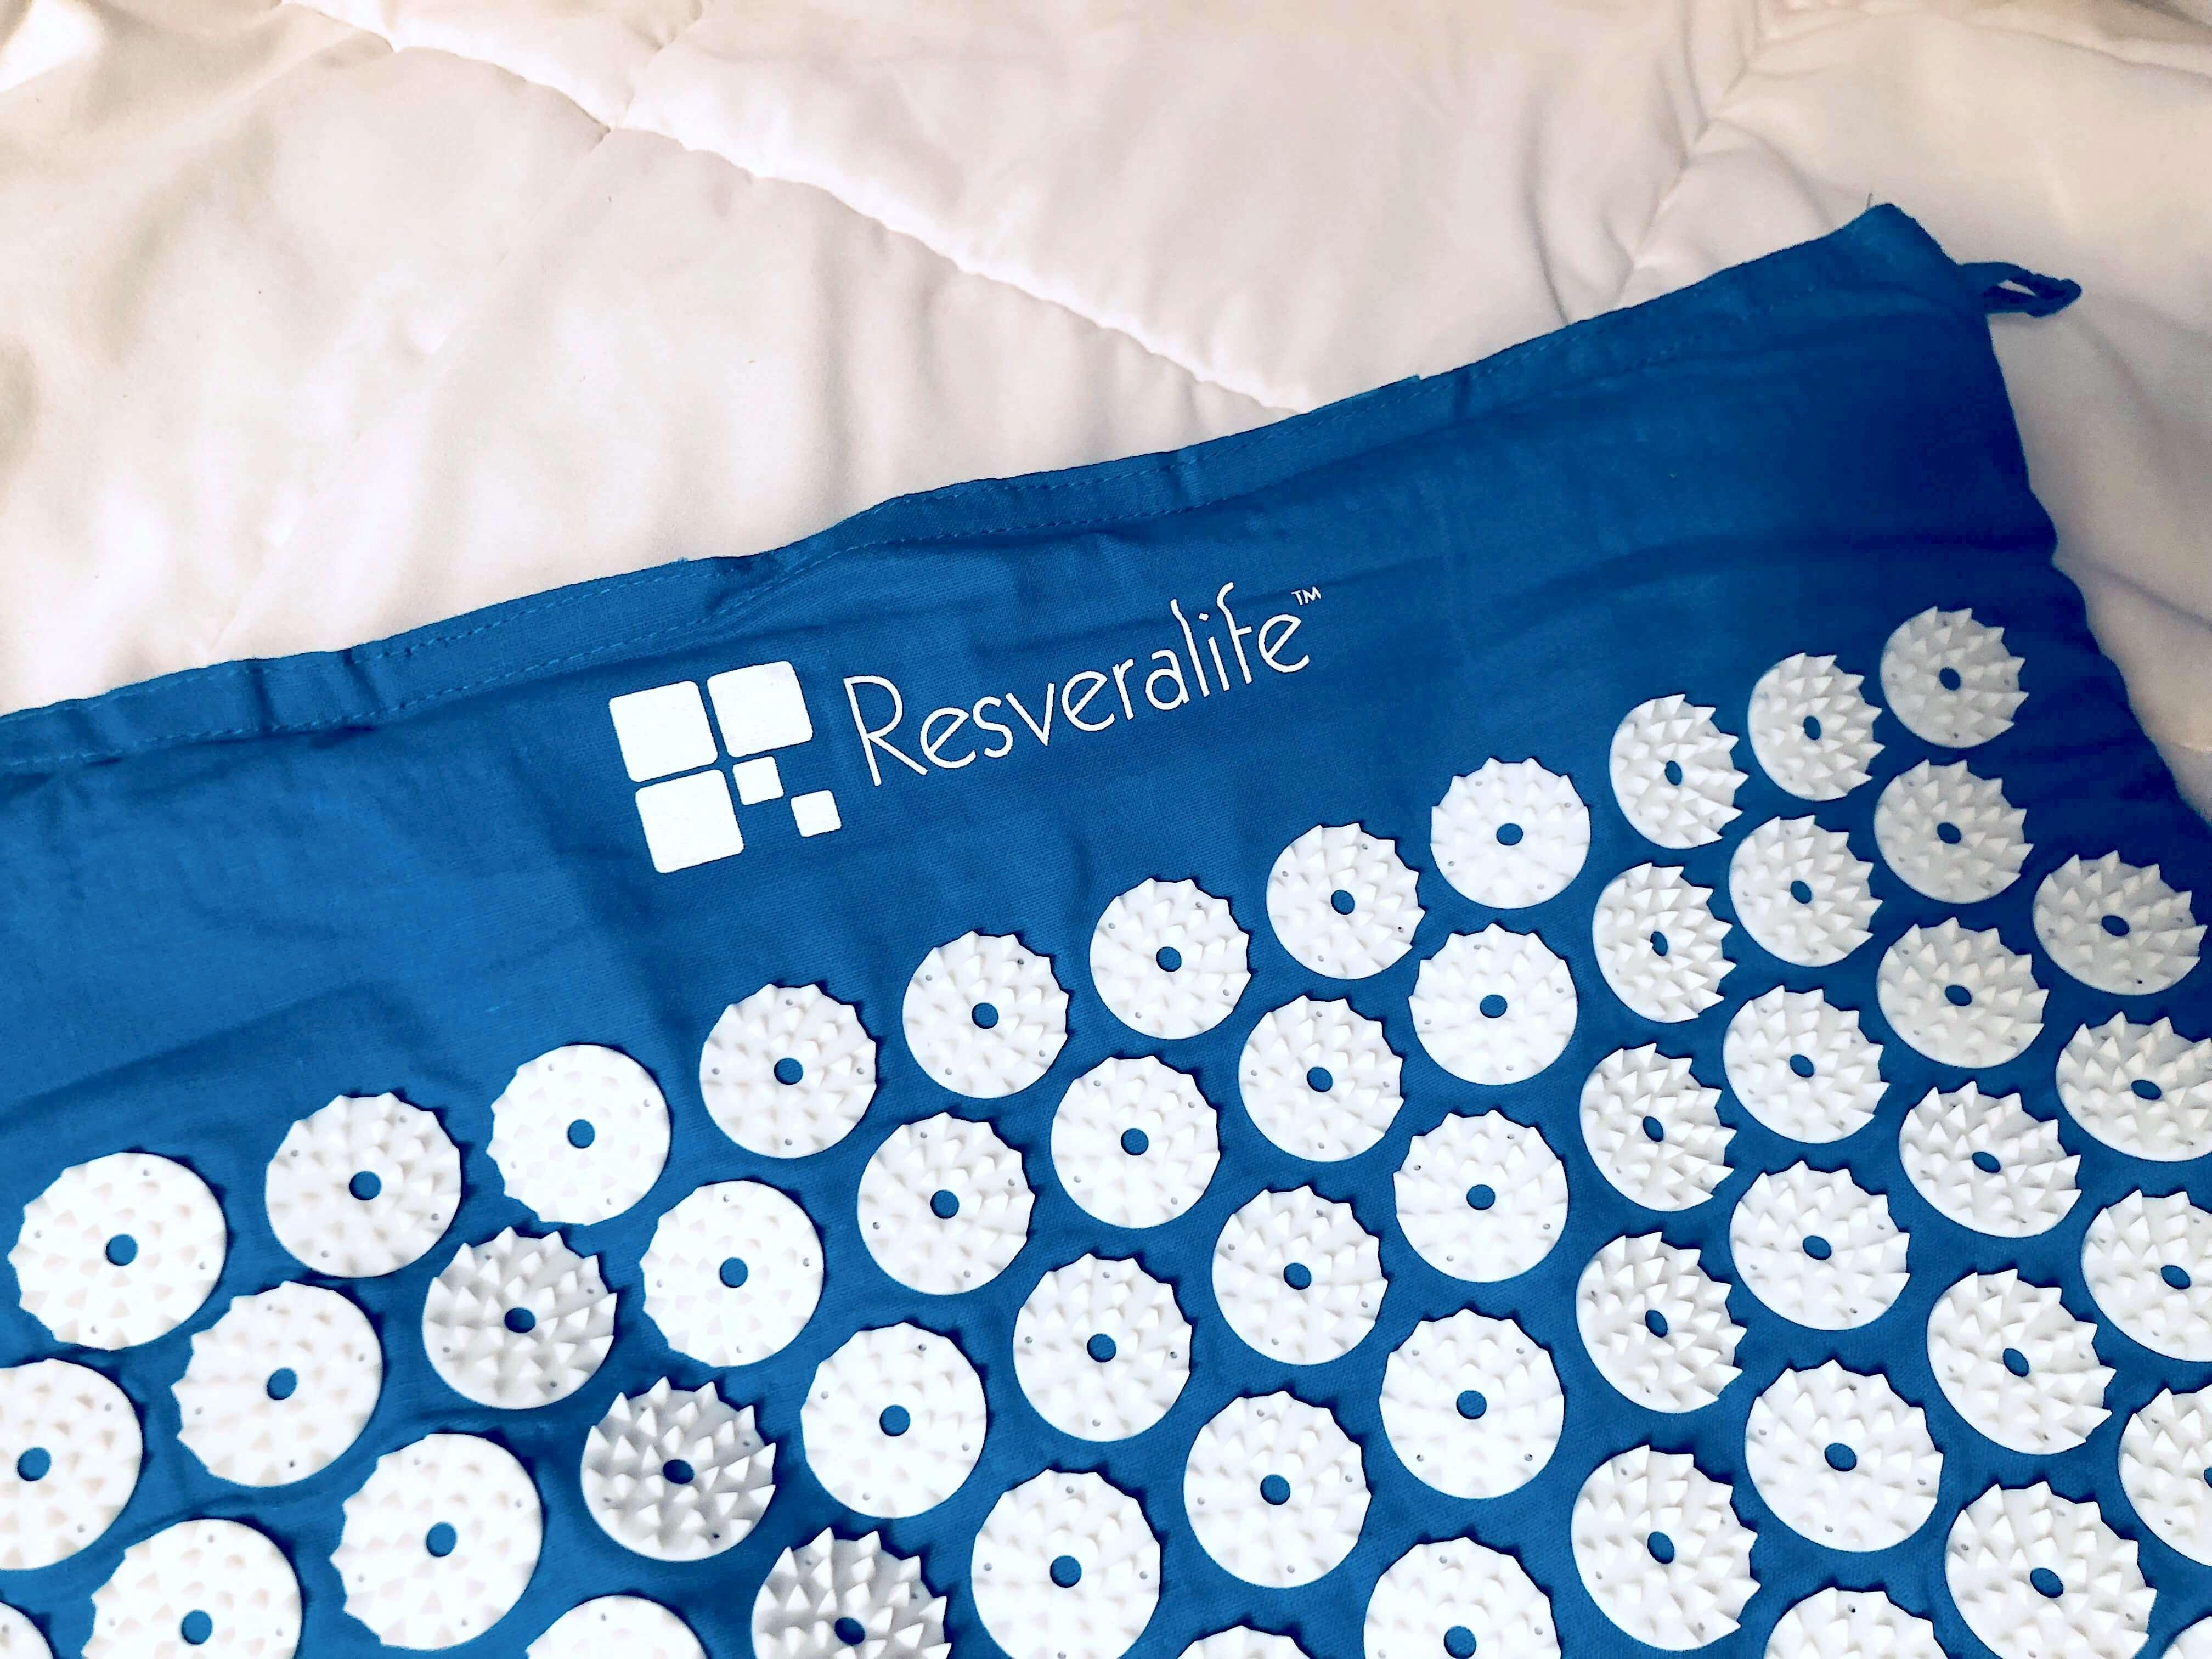 Resveralife Acupuncture Mat product review